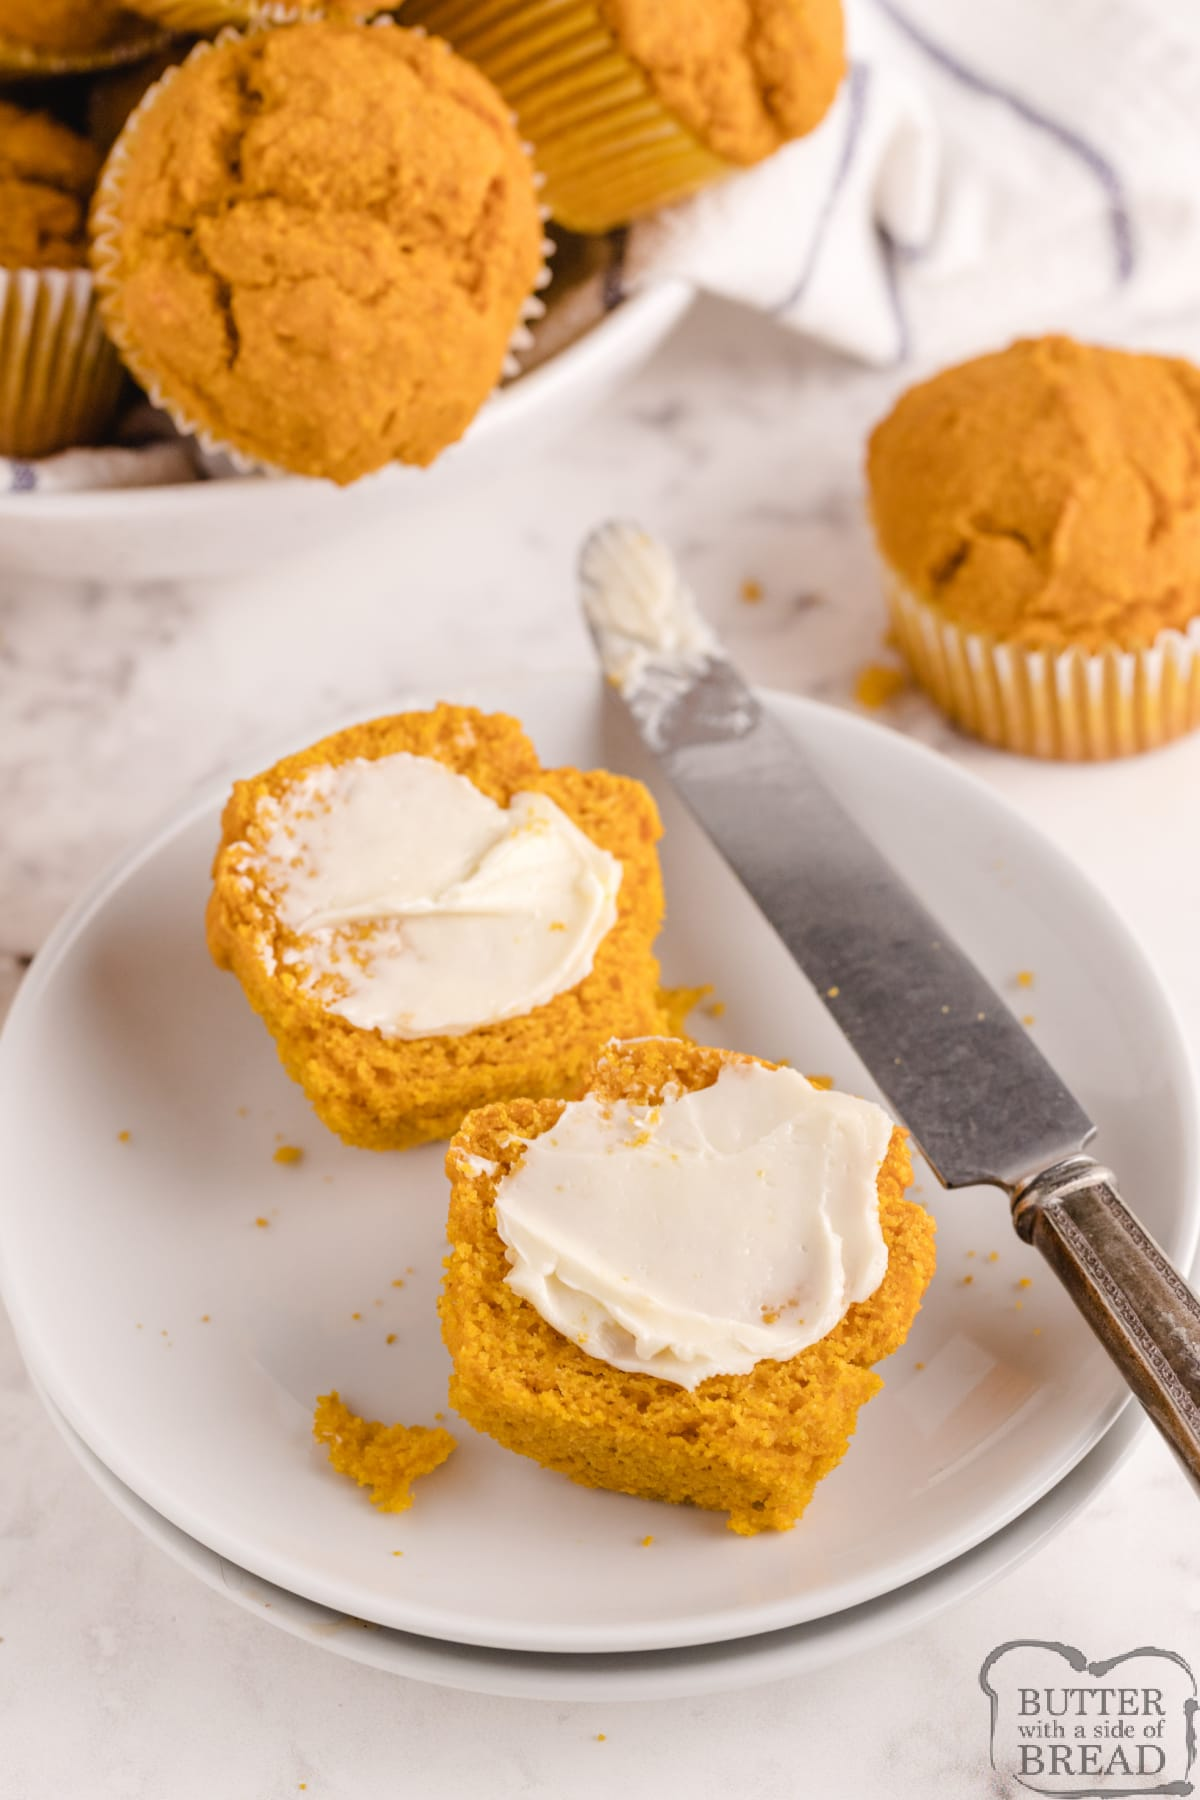 Pumpkin Corn Muffins made with pumpkin, corn meal and a few other basic ingredients. Delicious cornbread muffin recipe that is made even better with the addition of pumpkin.